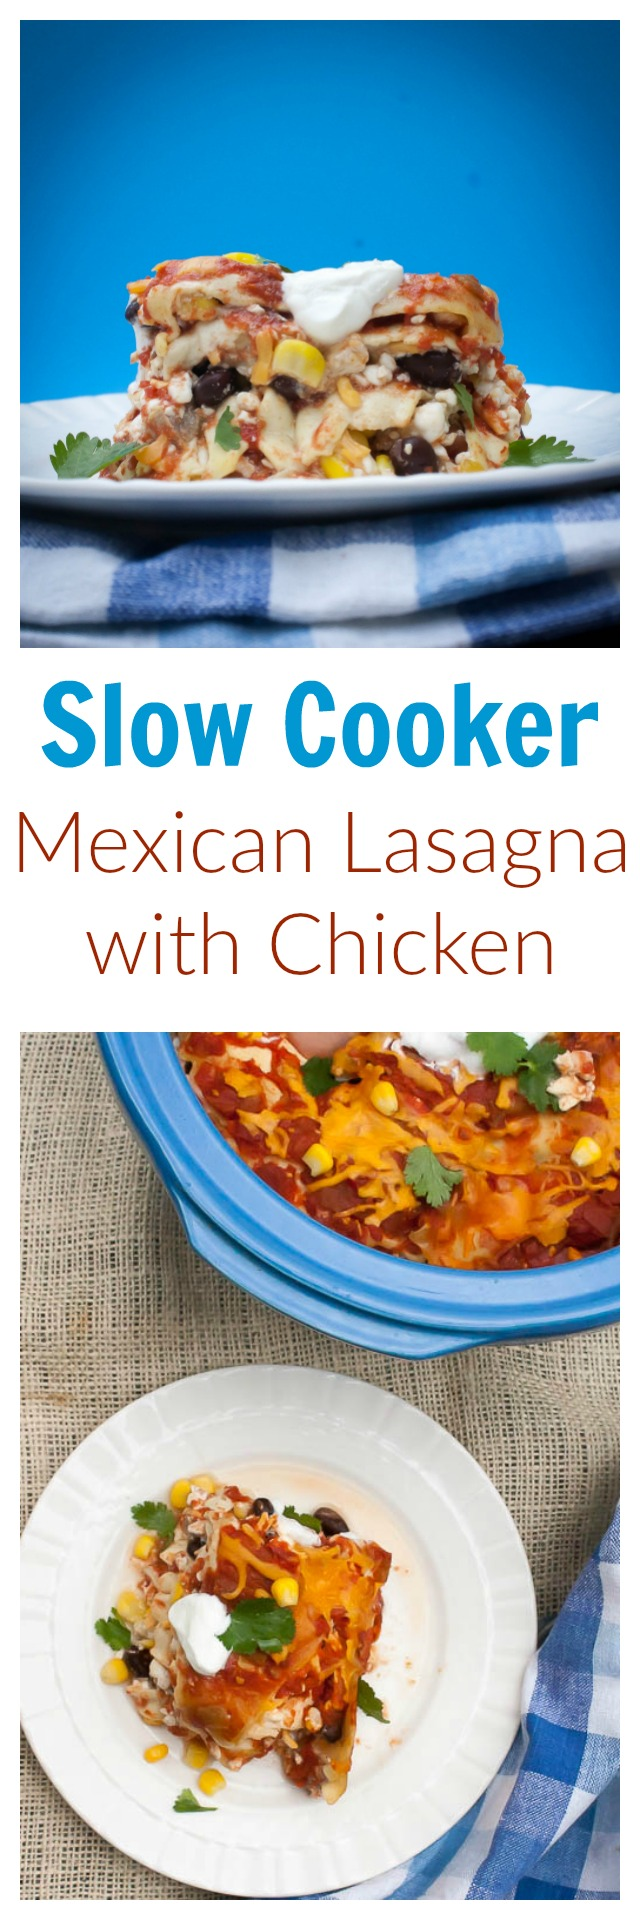 SLOW COOKER MEXICAN LASAGNA WITH CHICKEN | @tspcurry